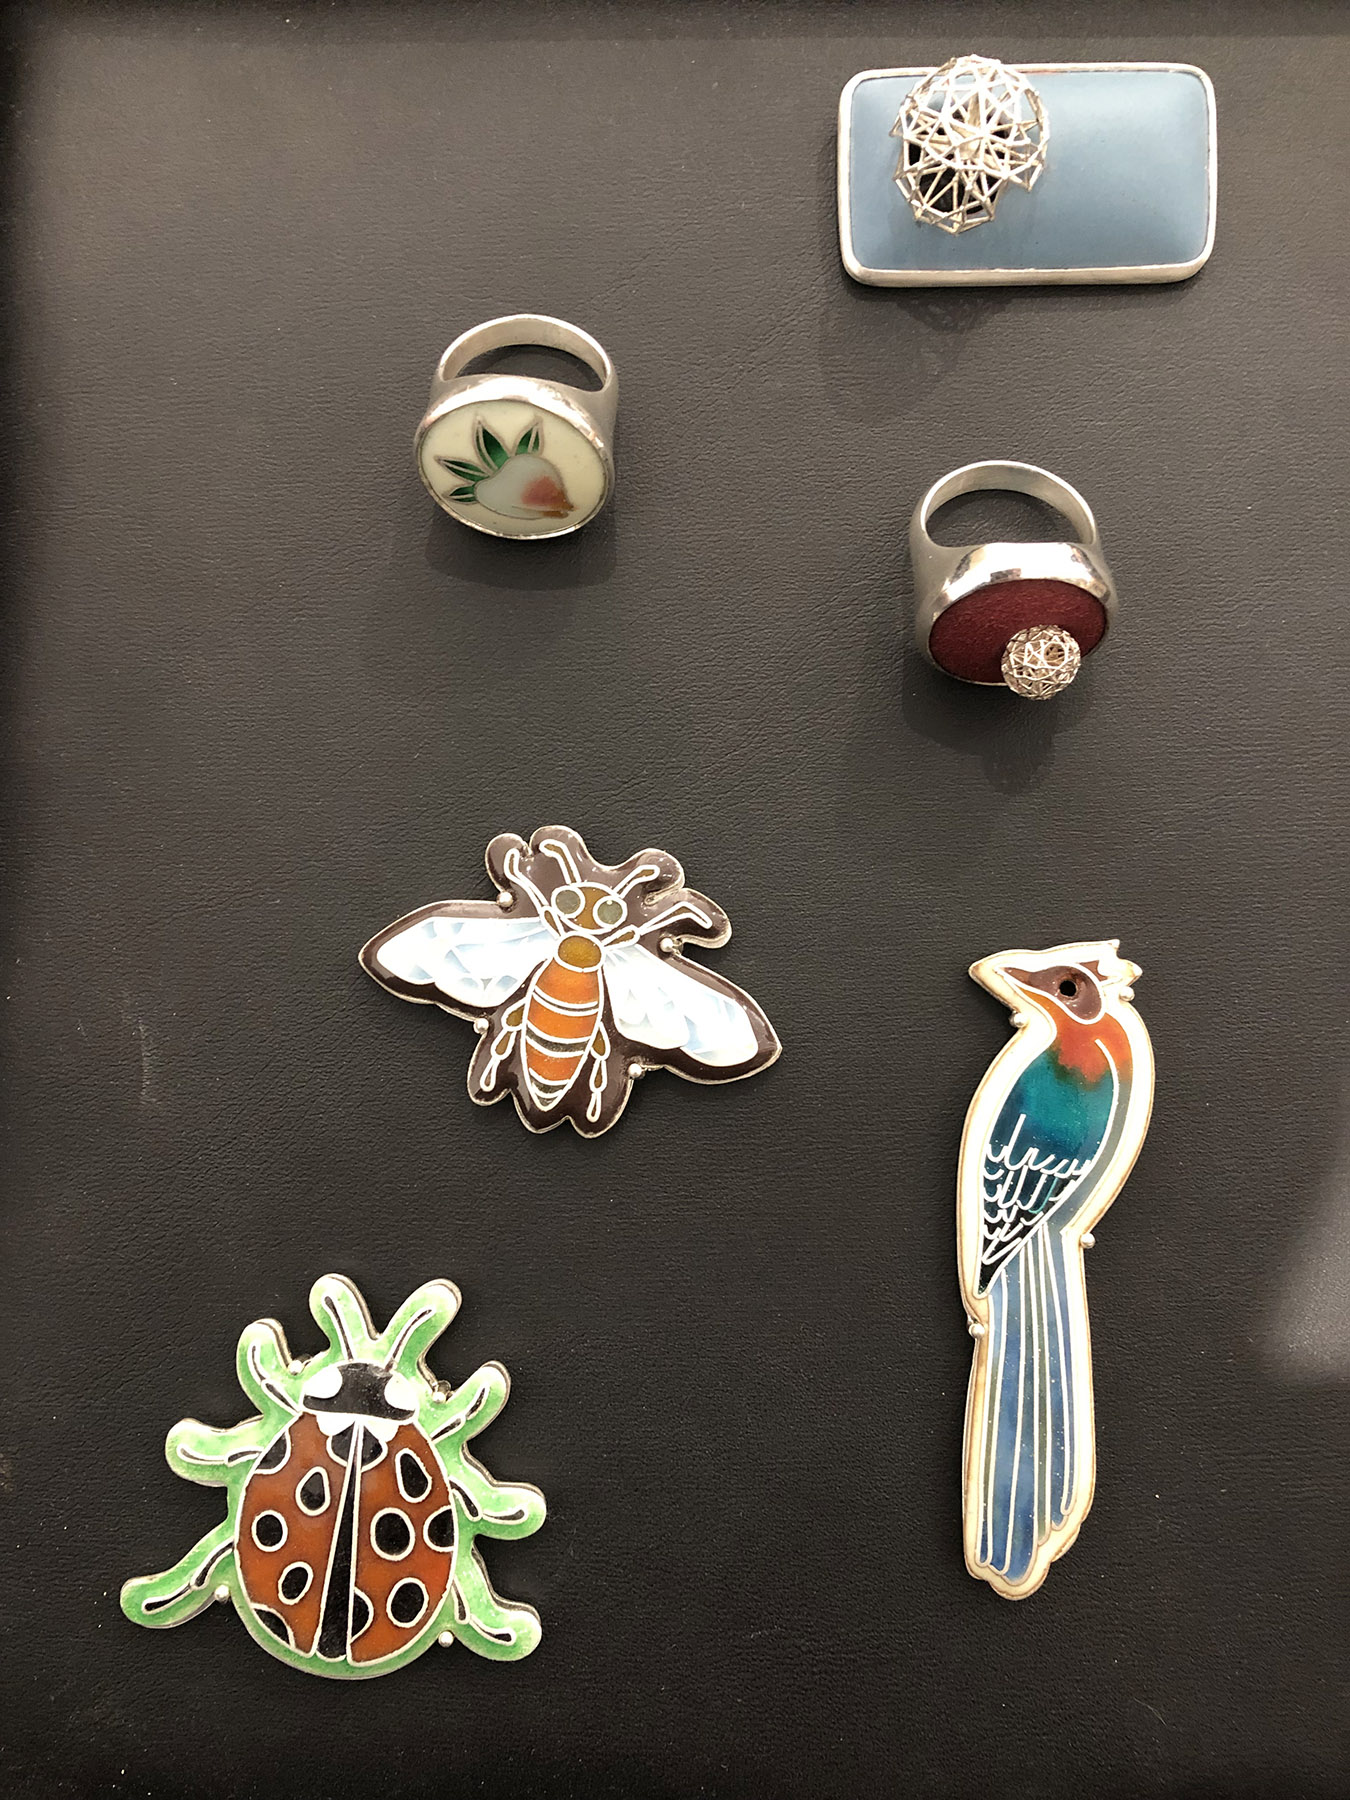 Enamel brooches by Alice Yujing Yan